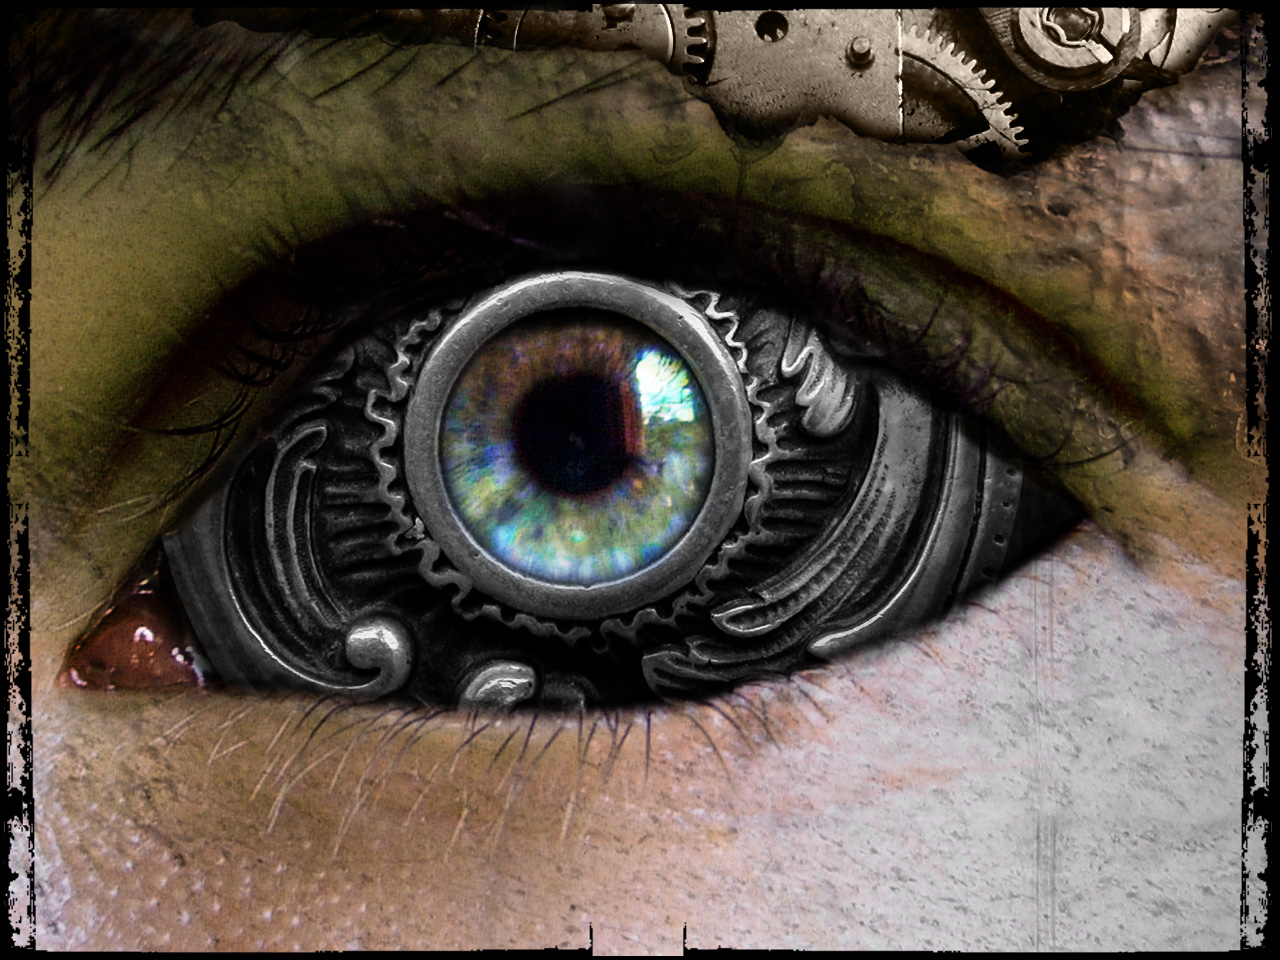 Eyes Steampunk Wallpaper 1280x960 Eyes Steampunk Iron 1280x960